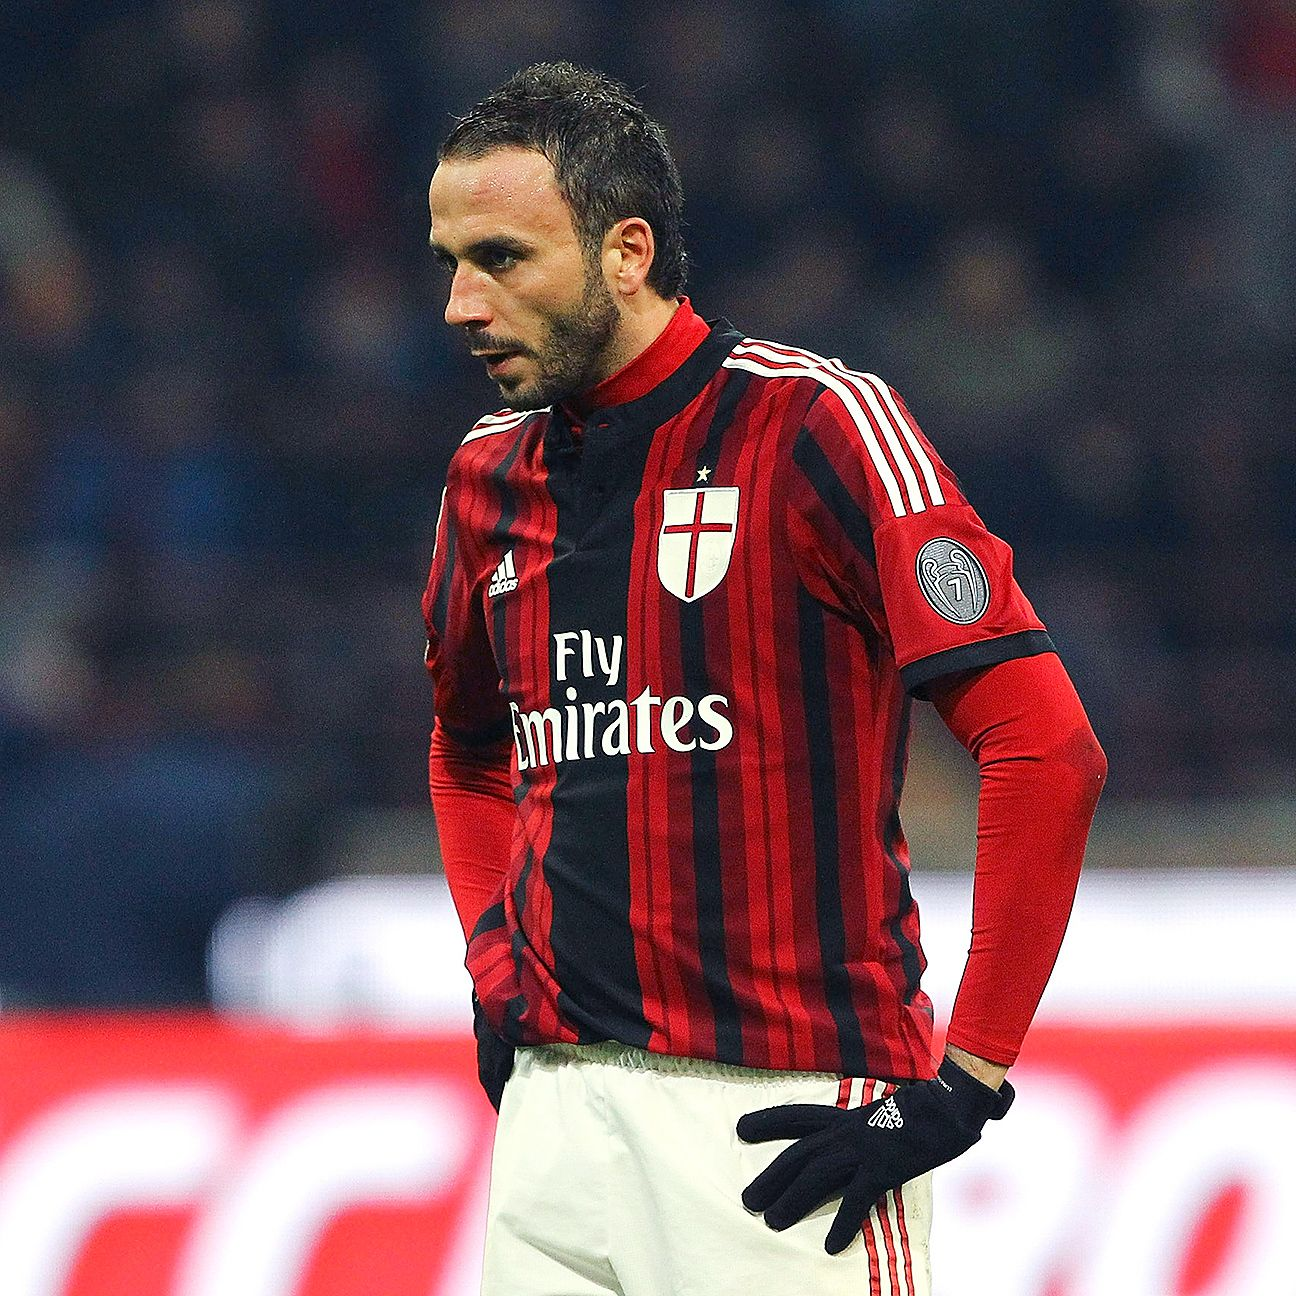 Giampaolo Pazzini and Milan can all but kiss their chances of a trophy goodbye after their Coppa Italia elimination to Lazio.